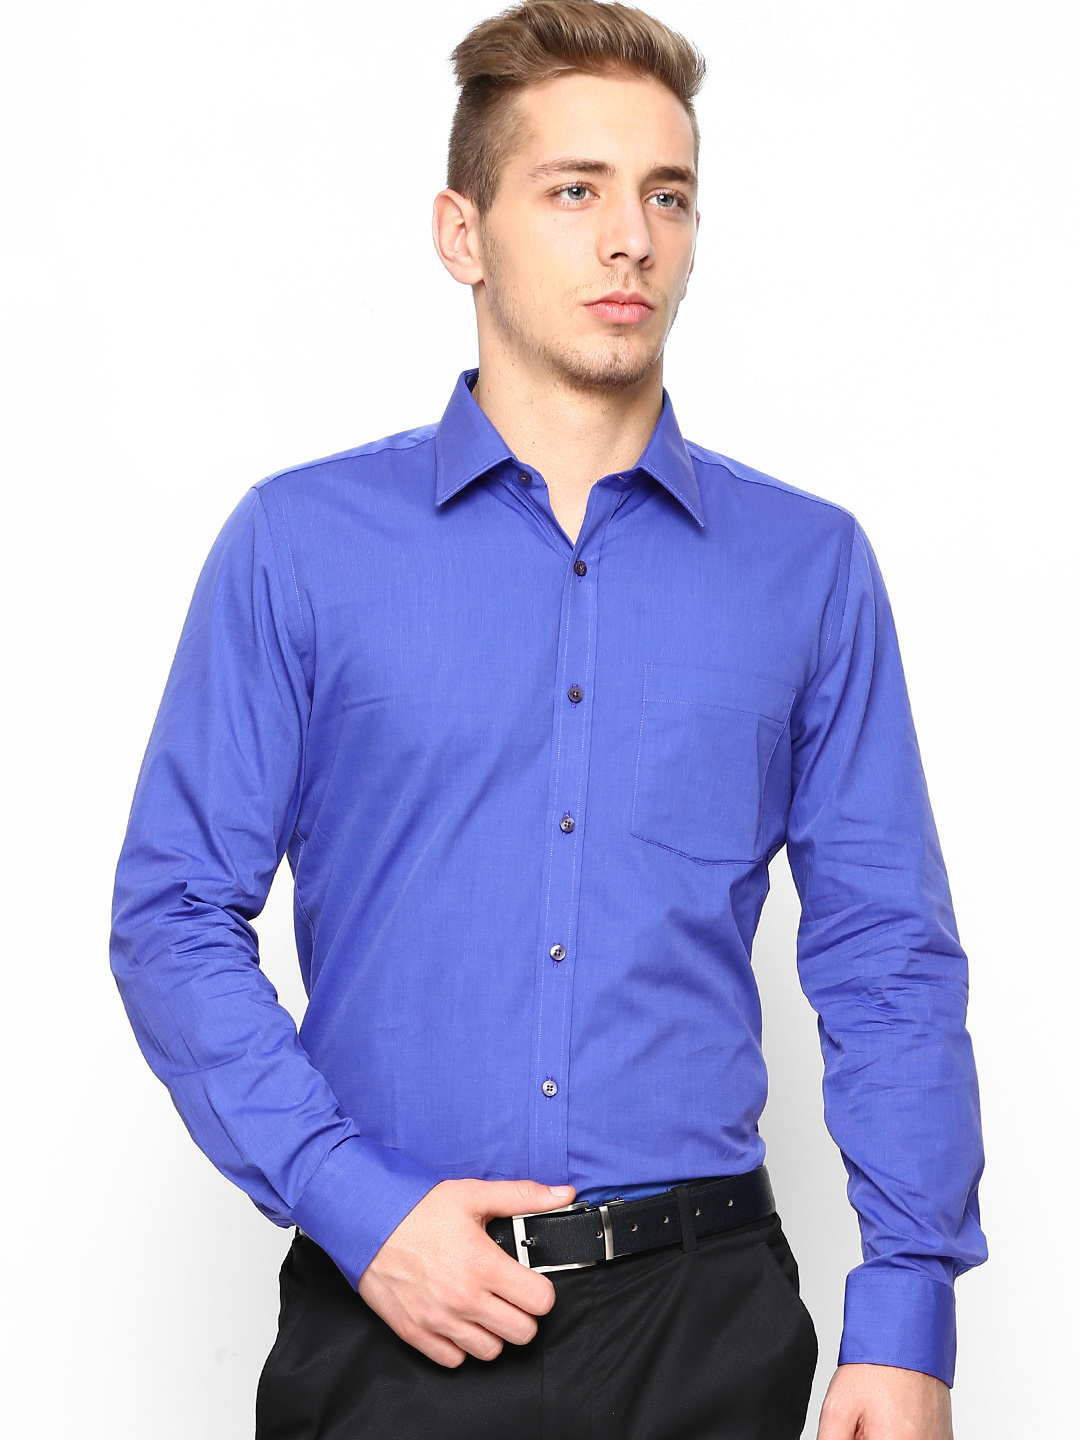 The wide use of formal shirts for men made the fashion designers think over it and hence, today there is a variety of shirt designs available to choose from. With a wide range of colours, fittings, lengths and designs, they have always allowed the men to look professional and intellectual.